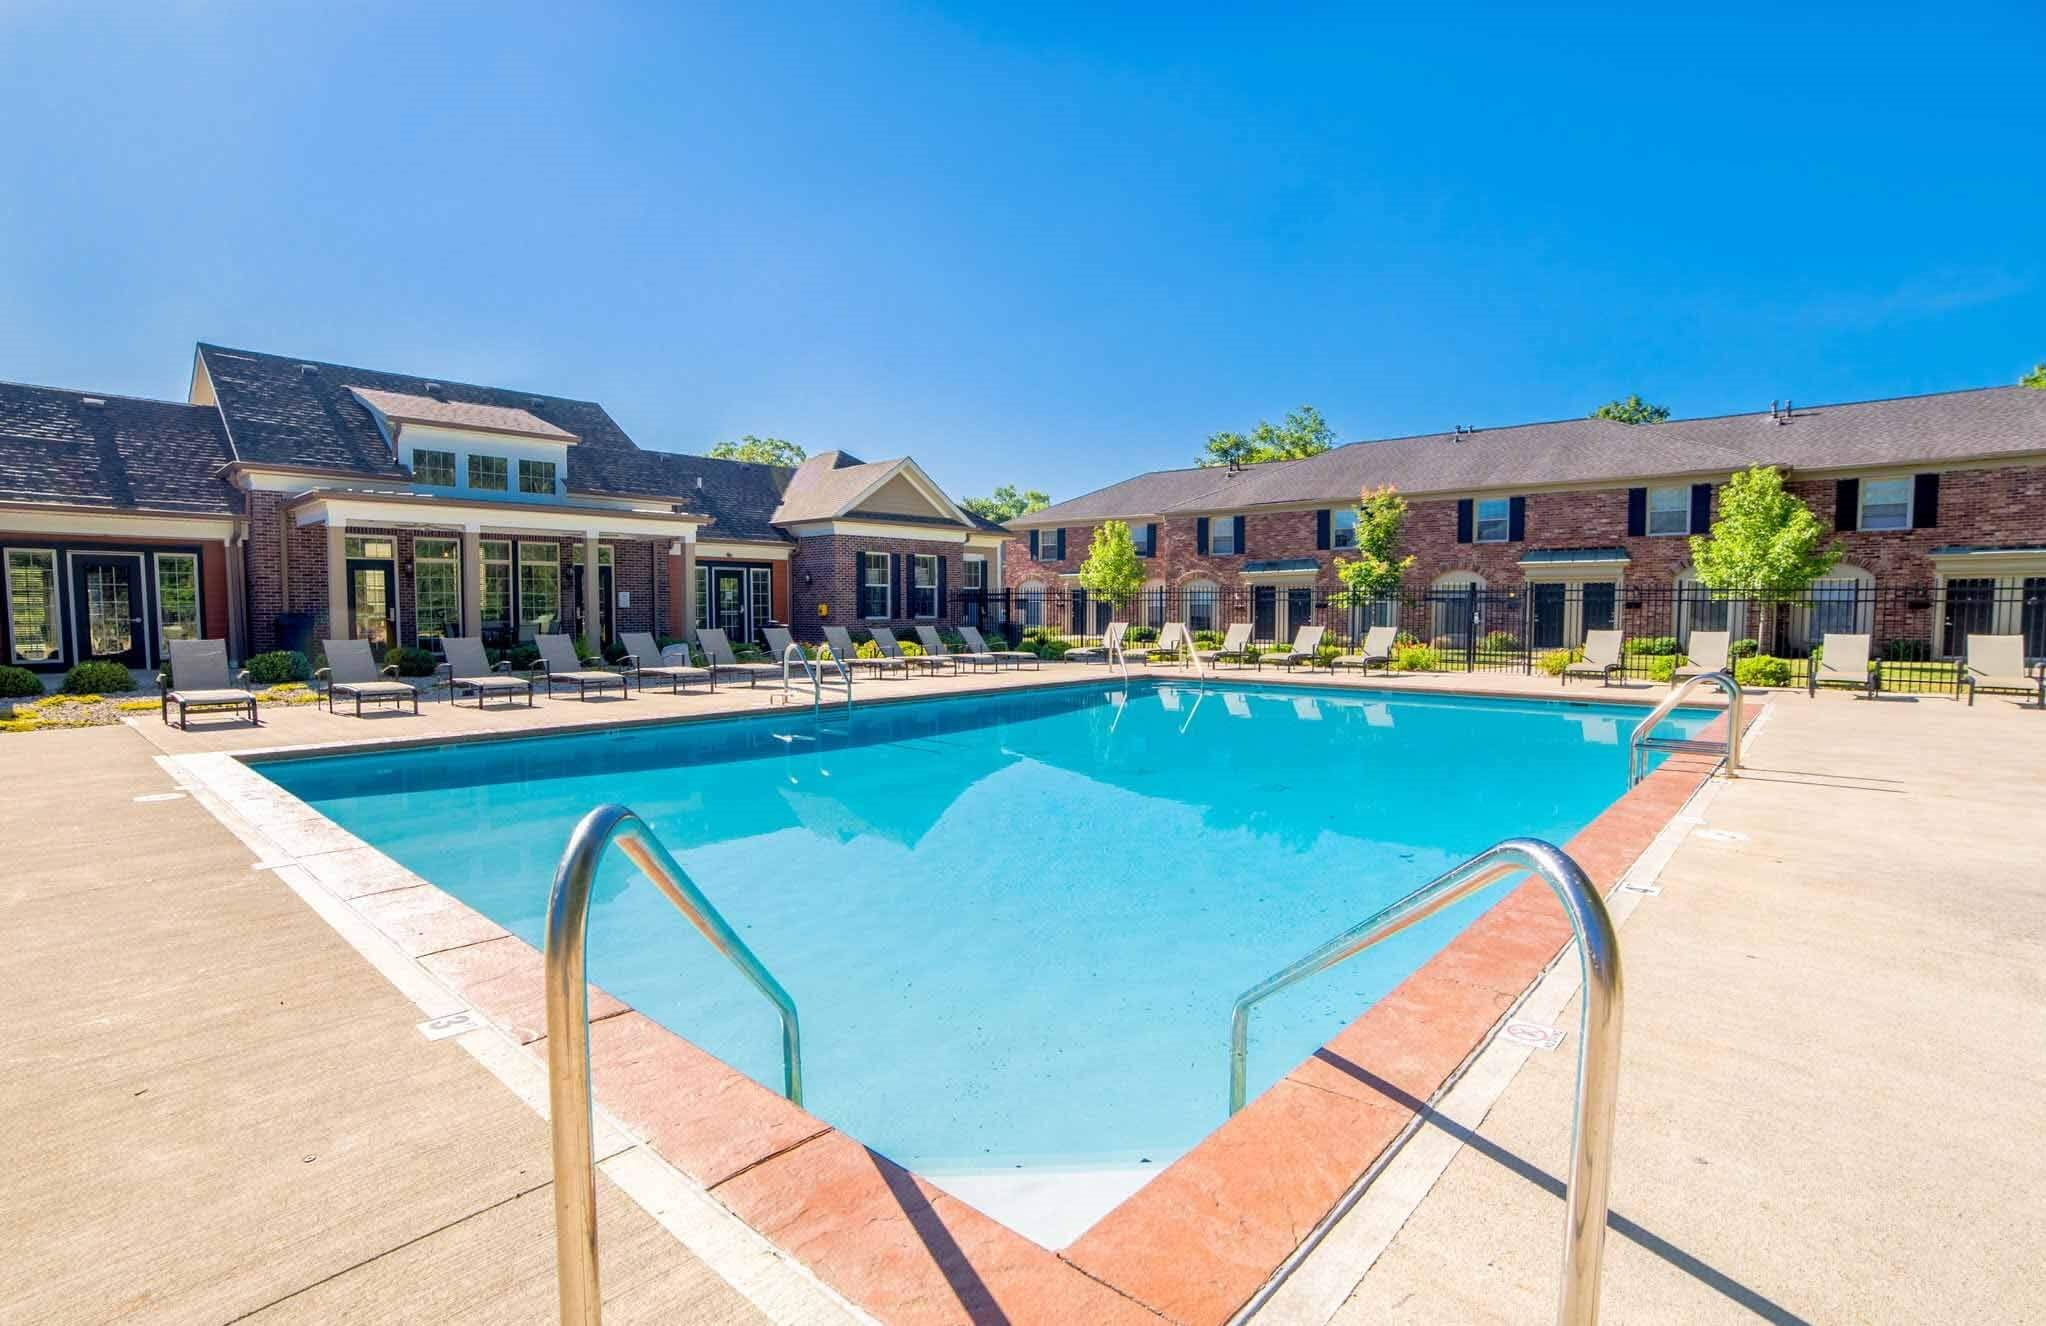 Monon Place Apartments, 5934 Carvel Ave, Broad Ripple, Indianapolis, IN, broad ripple apartments, apartments in indianapolis, apartments in indy, 1 bedroom, 2 bedroom, 3 bedroom, pet friendly